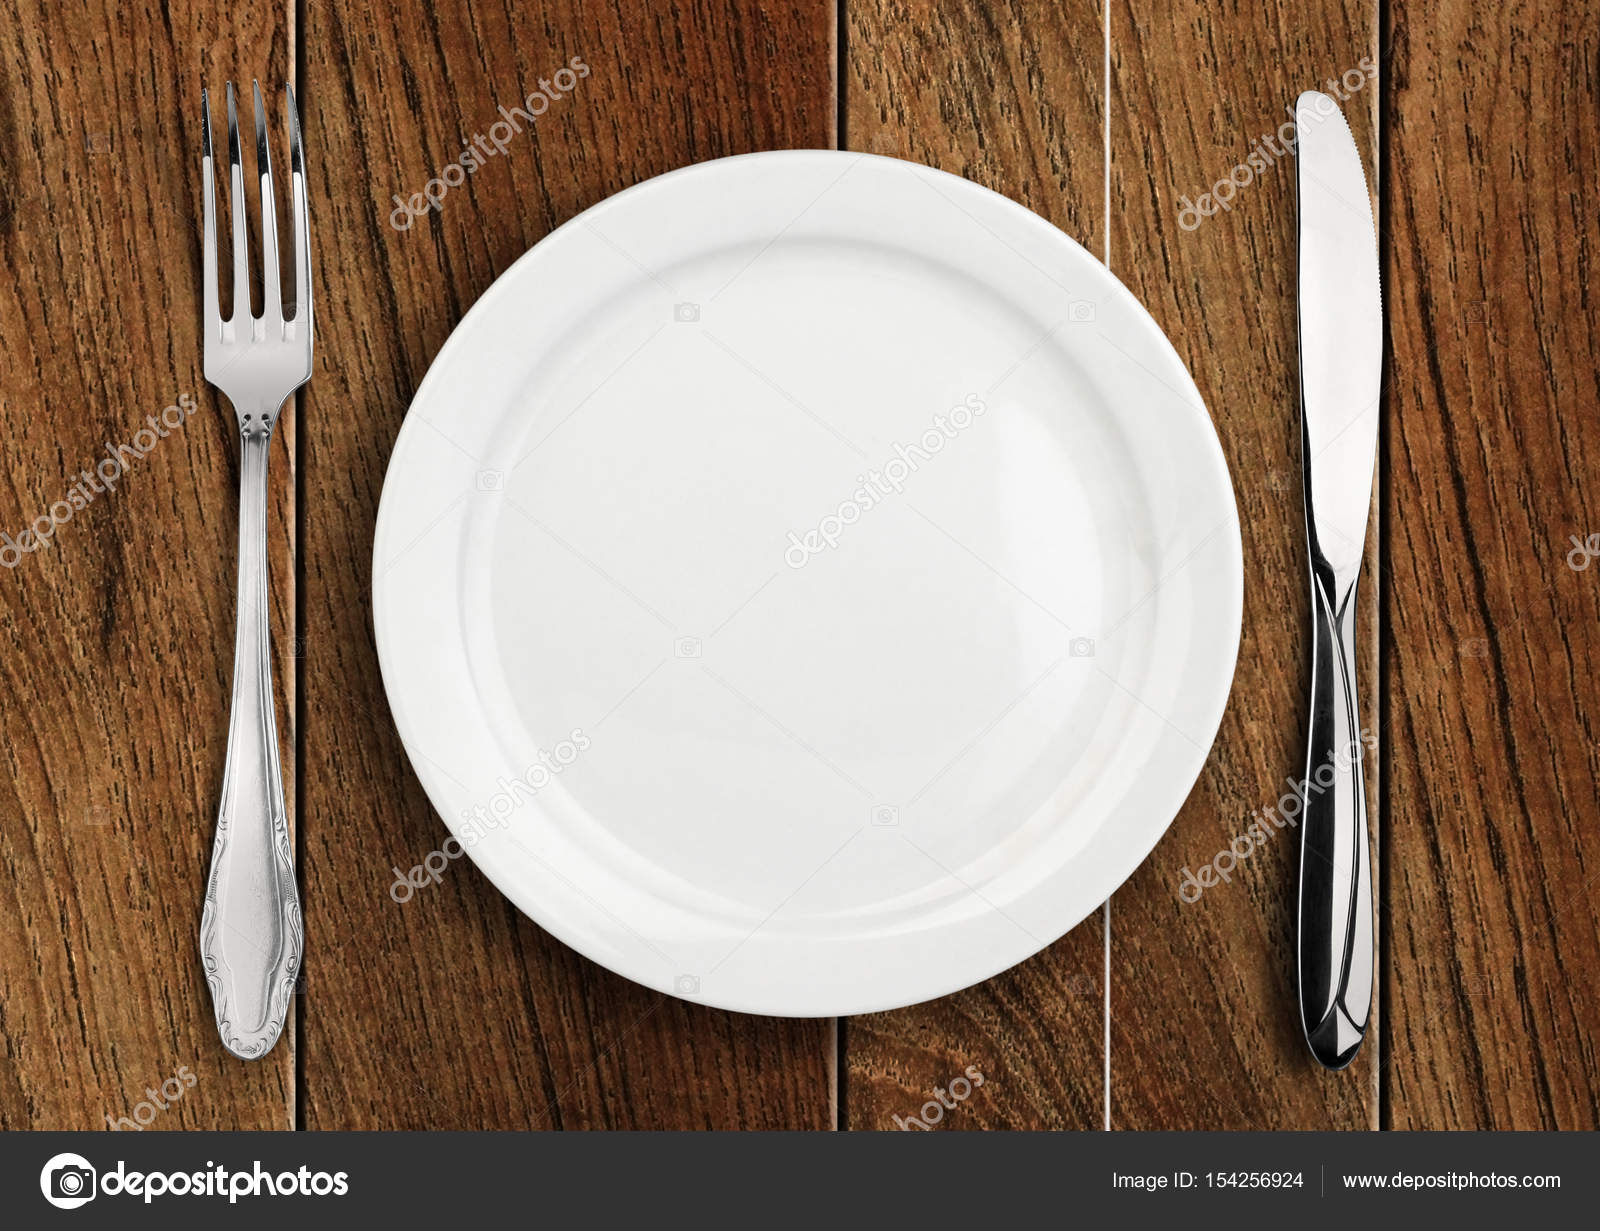 Table setting empty plate and silverware on wooden table top v u2014 Stock Photo & Table setting empty plate and silverware on wooden table top v ...